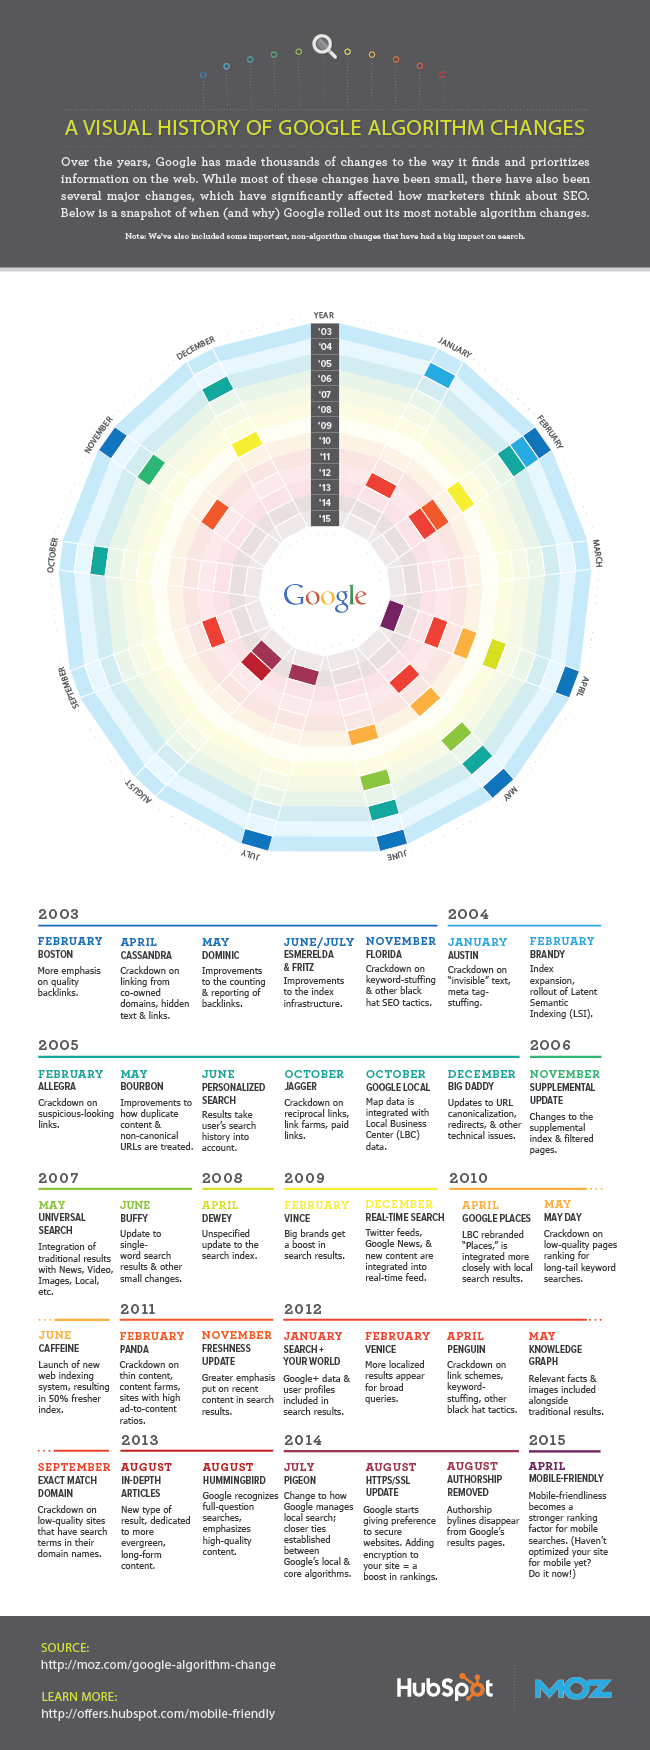 A Visual Guide To The History of Google's Algorithms